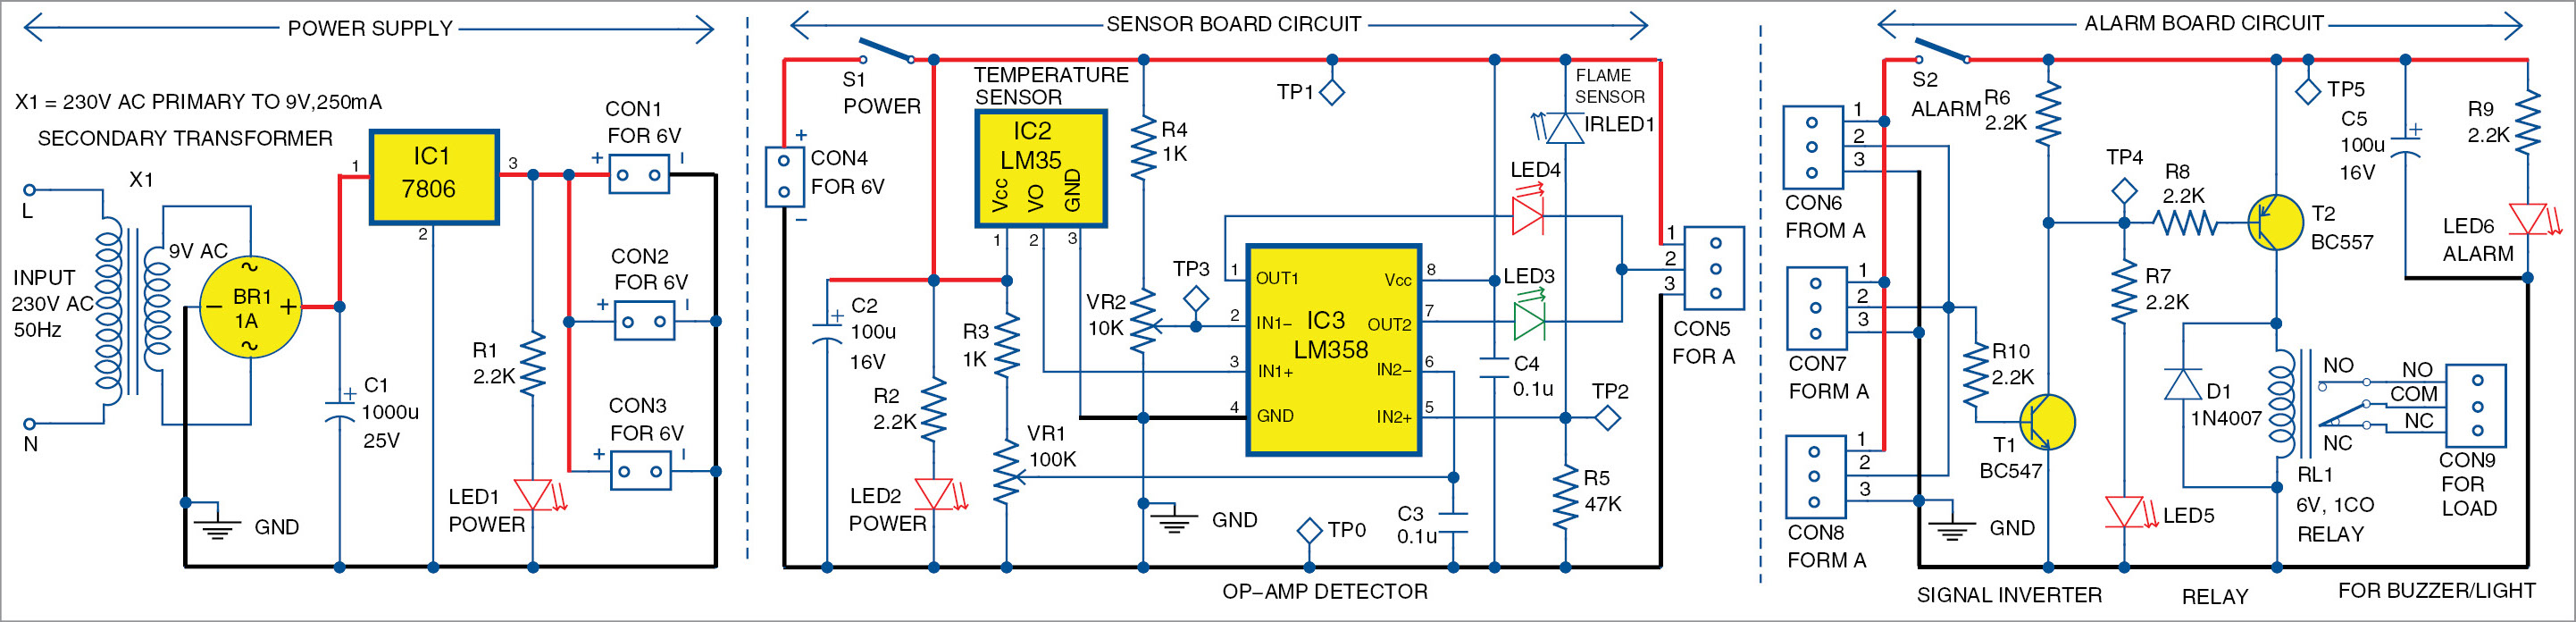 Simple Multi Sensor Fire Alarm Full Electronics Project Build Your Own Security Systems Ir Receiver Circuit Diagram